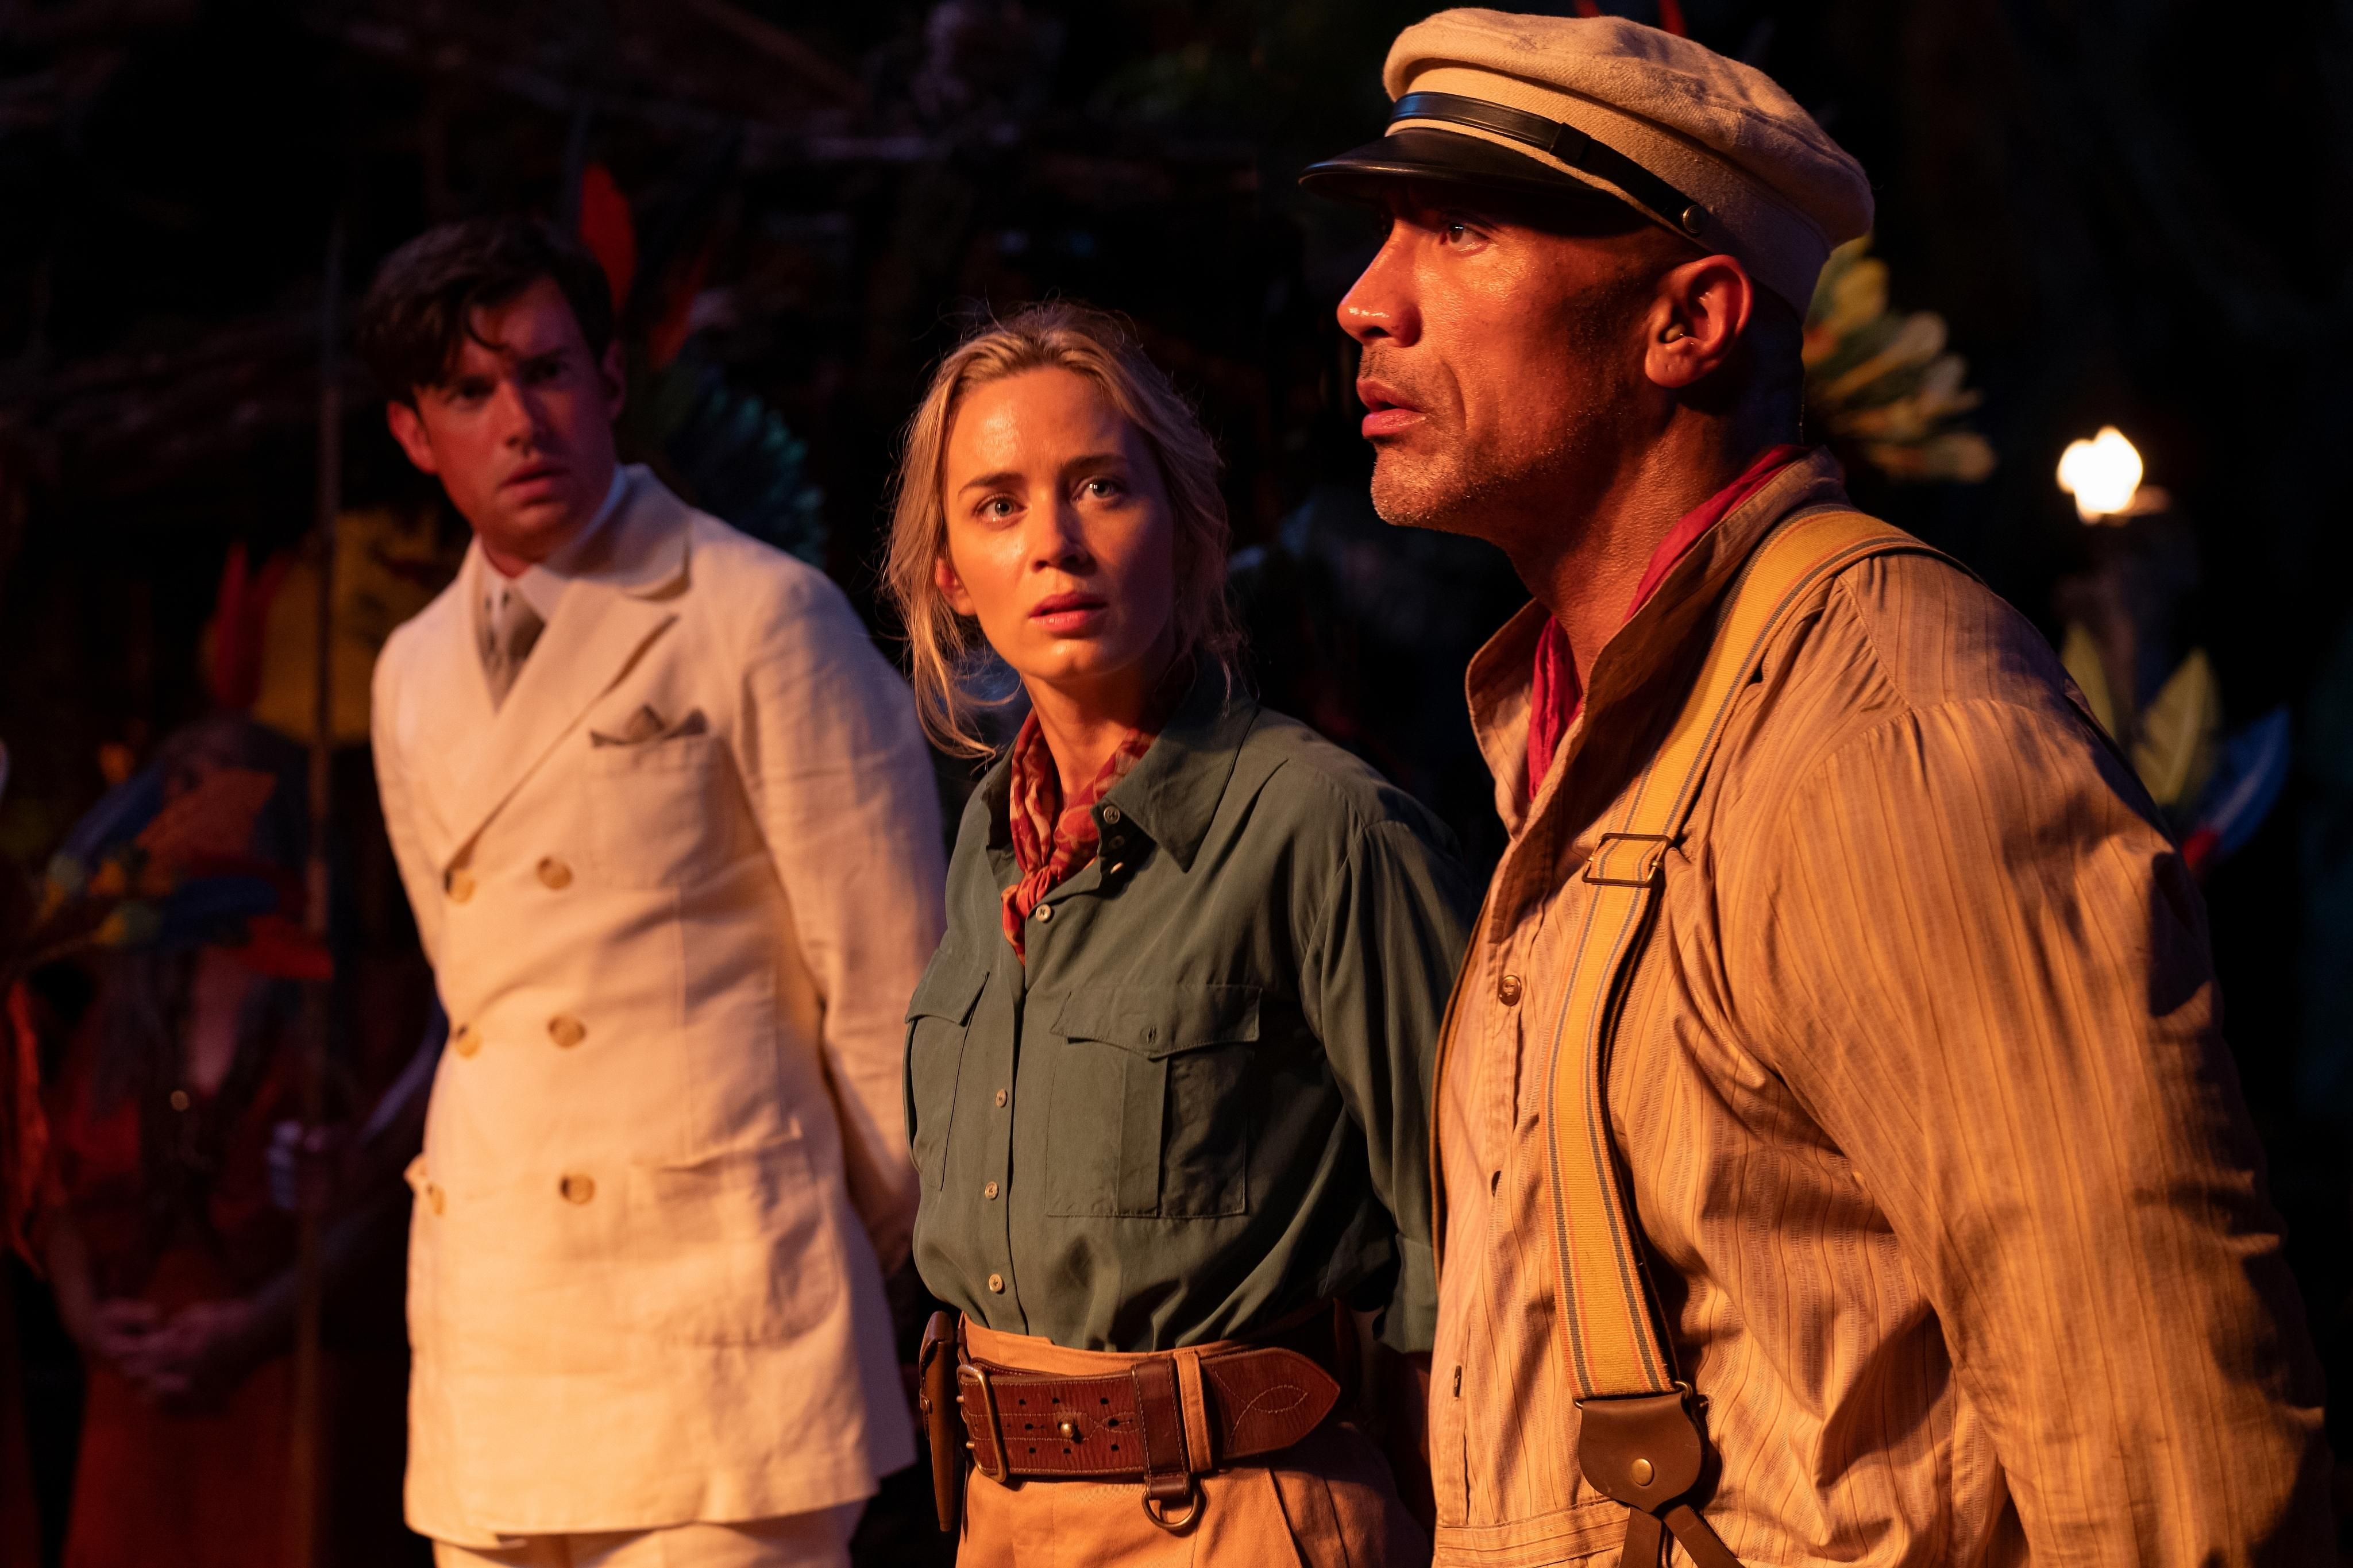 """From Left to Right: Macgregor (played by Jack Whitehall), Lily (played by Emily Blunt) and Frank (played by Dwayne Johnson) are standing side by side in a movie still from Disney's """"Jungle Cruise."""""""